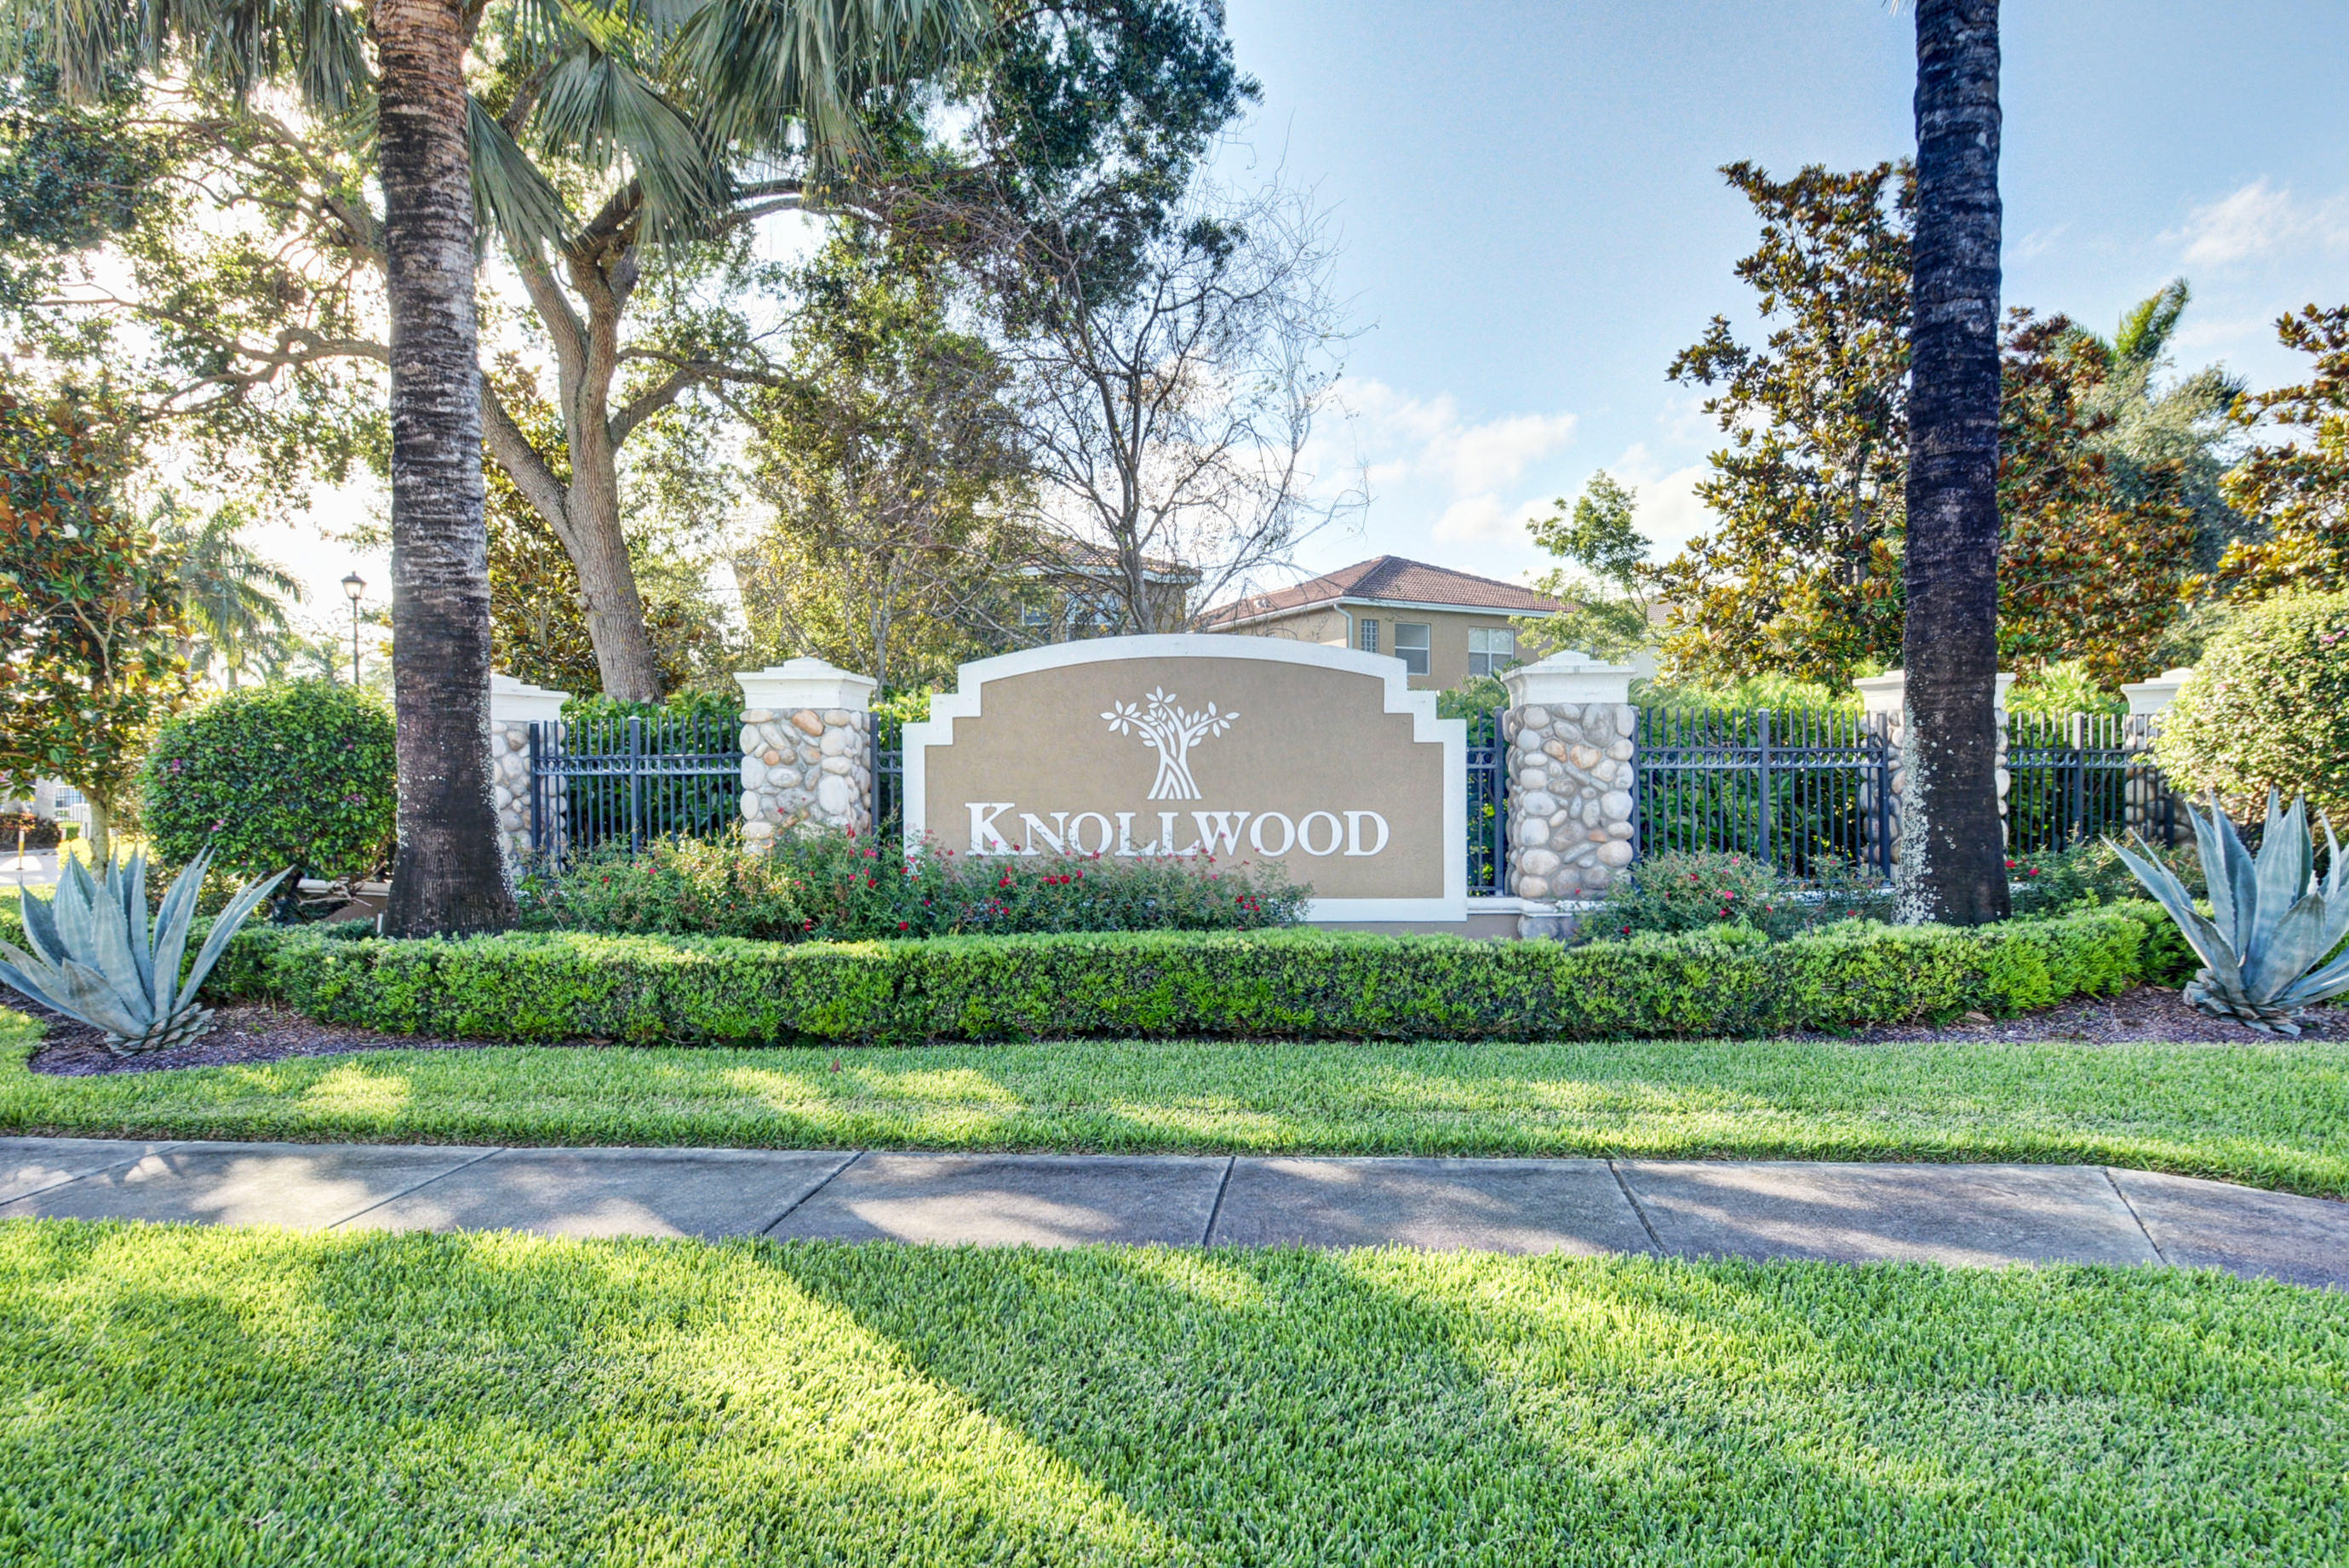 KNOLLWOOD REAL ESTATE